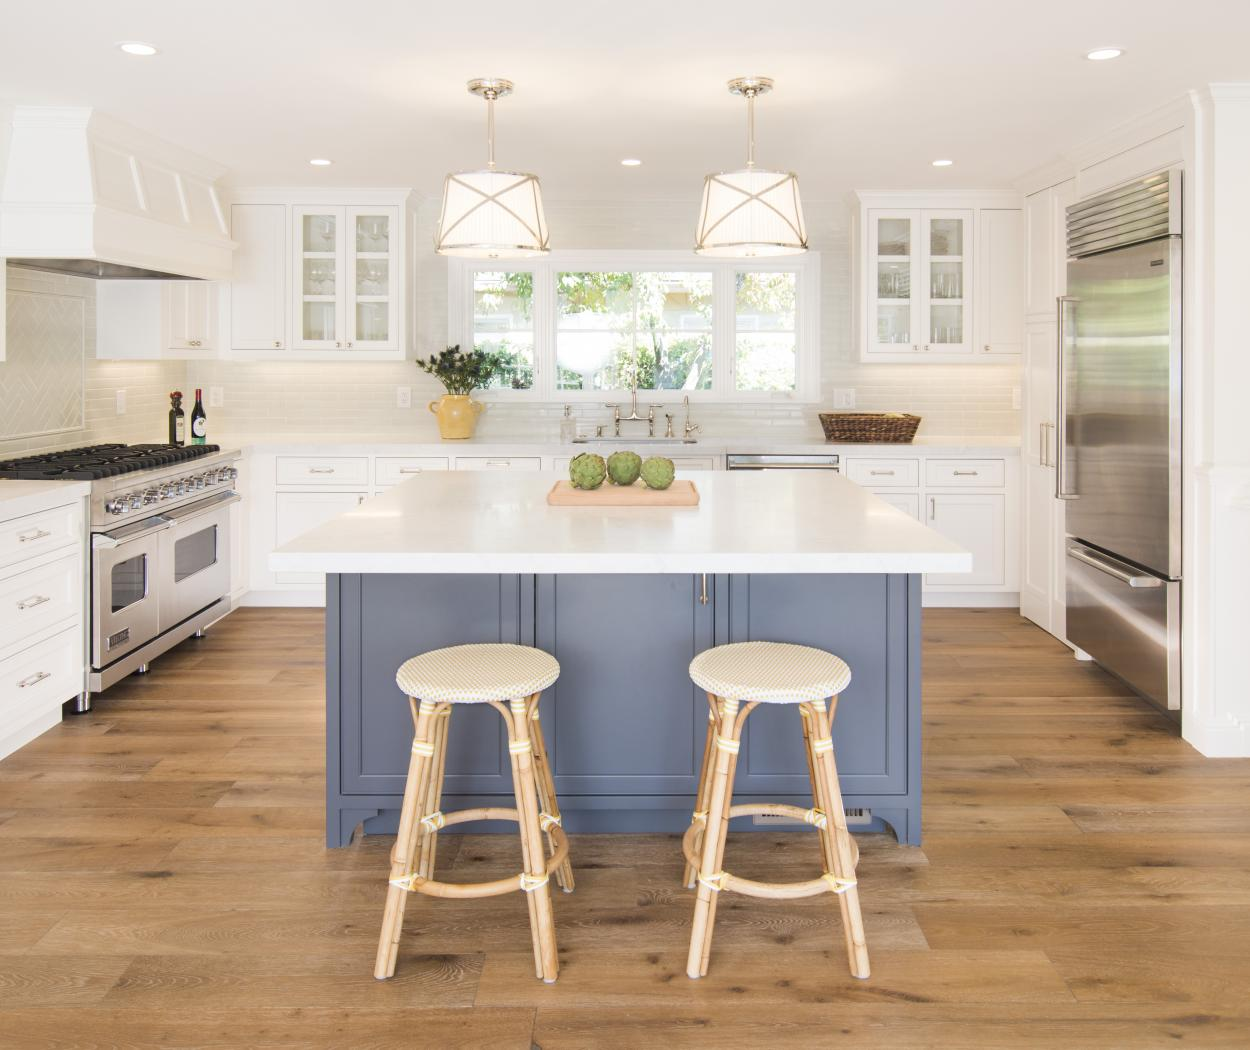 Transitional Two Toned Painted White Kitchen with a Blue Island, Glass Doors and Stainless Steel Appliances